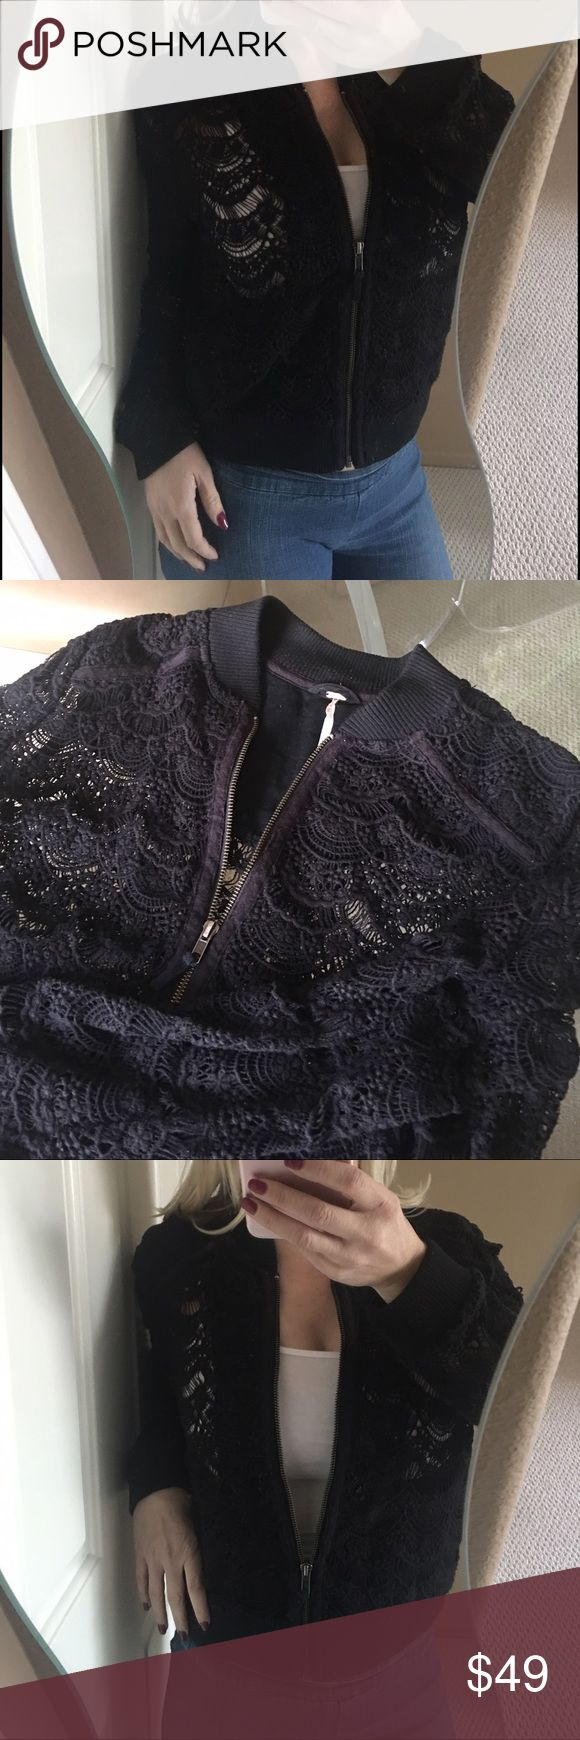 ✨Free People Black Crochet Zip Up Cropped Jacket✨ Super cute, chic, and classic black crochet Free People jacket! Full front zip, cotton collar, hem, and cuffs. In excellent condition! ❤️ Free People Jackets & Coats